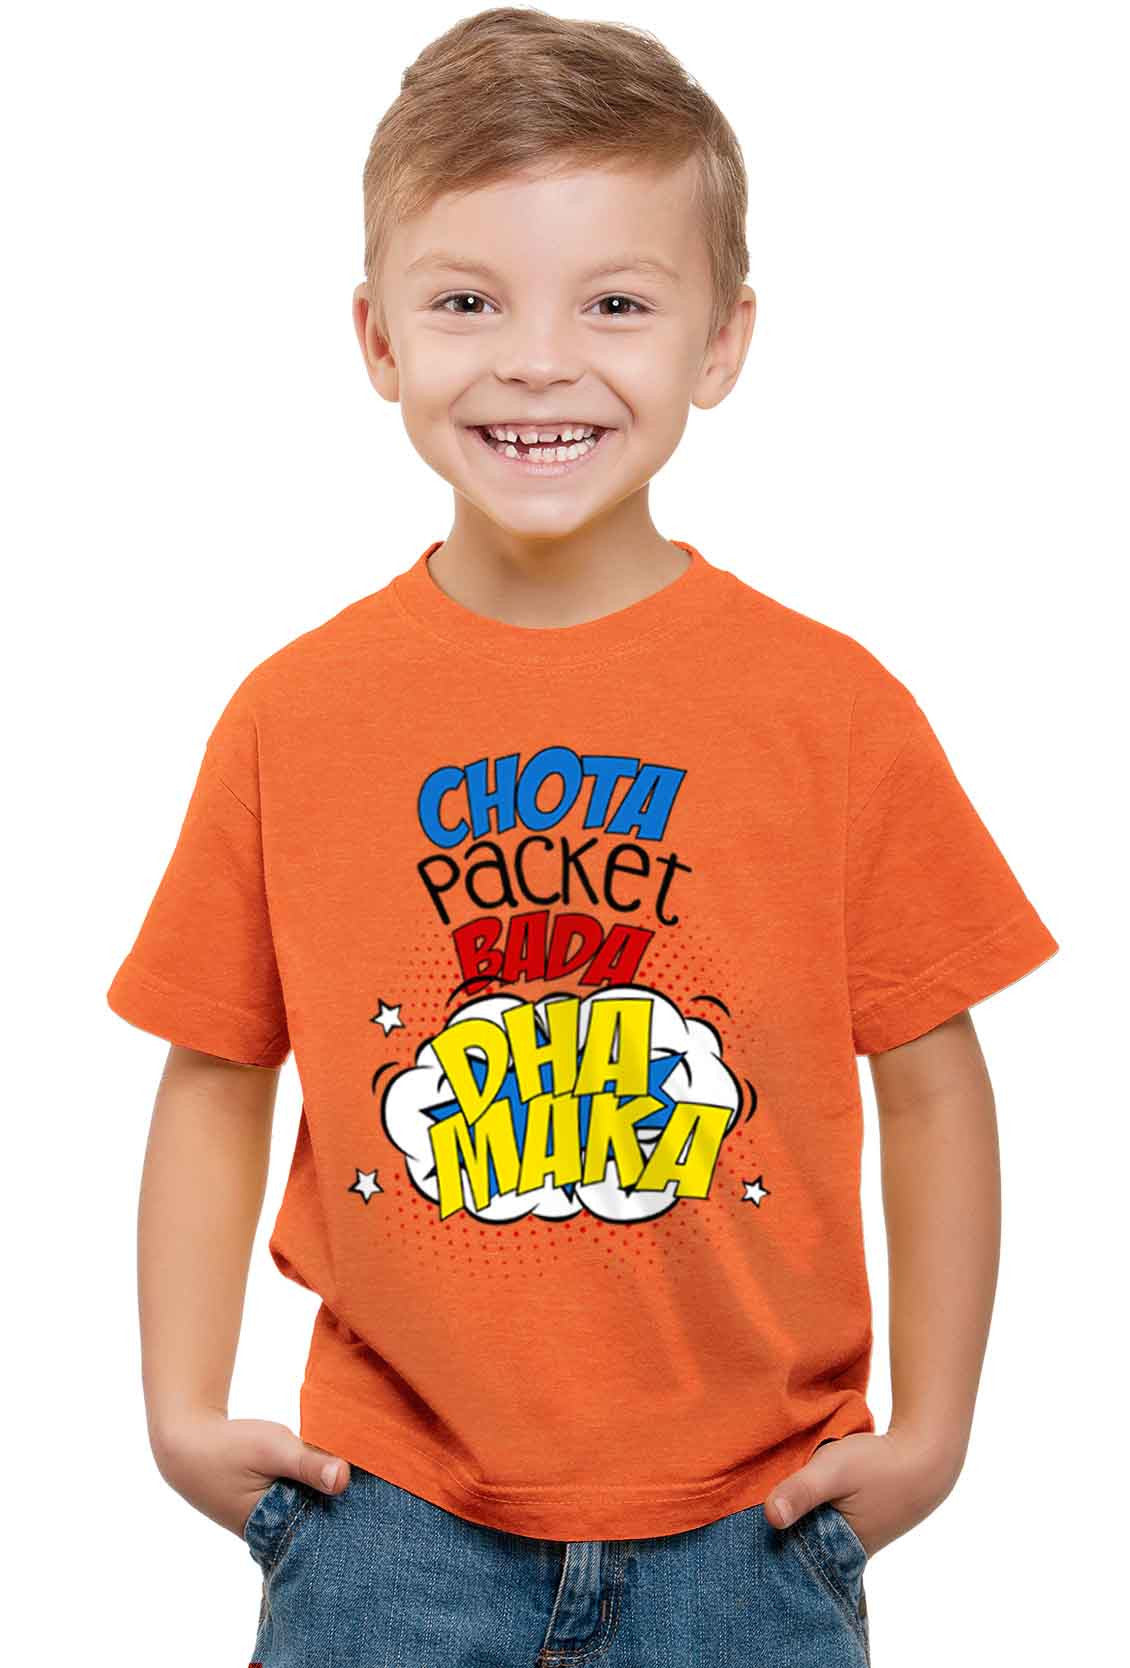 Design your t shirt india -  Chota Packet Bada Dhamaka Kid S T Shirt Wear Your Opinion Wyo In